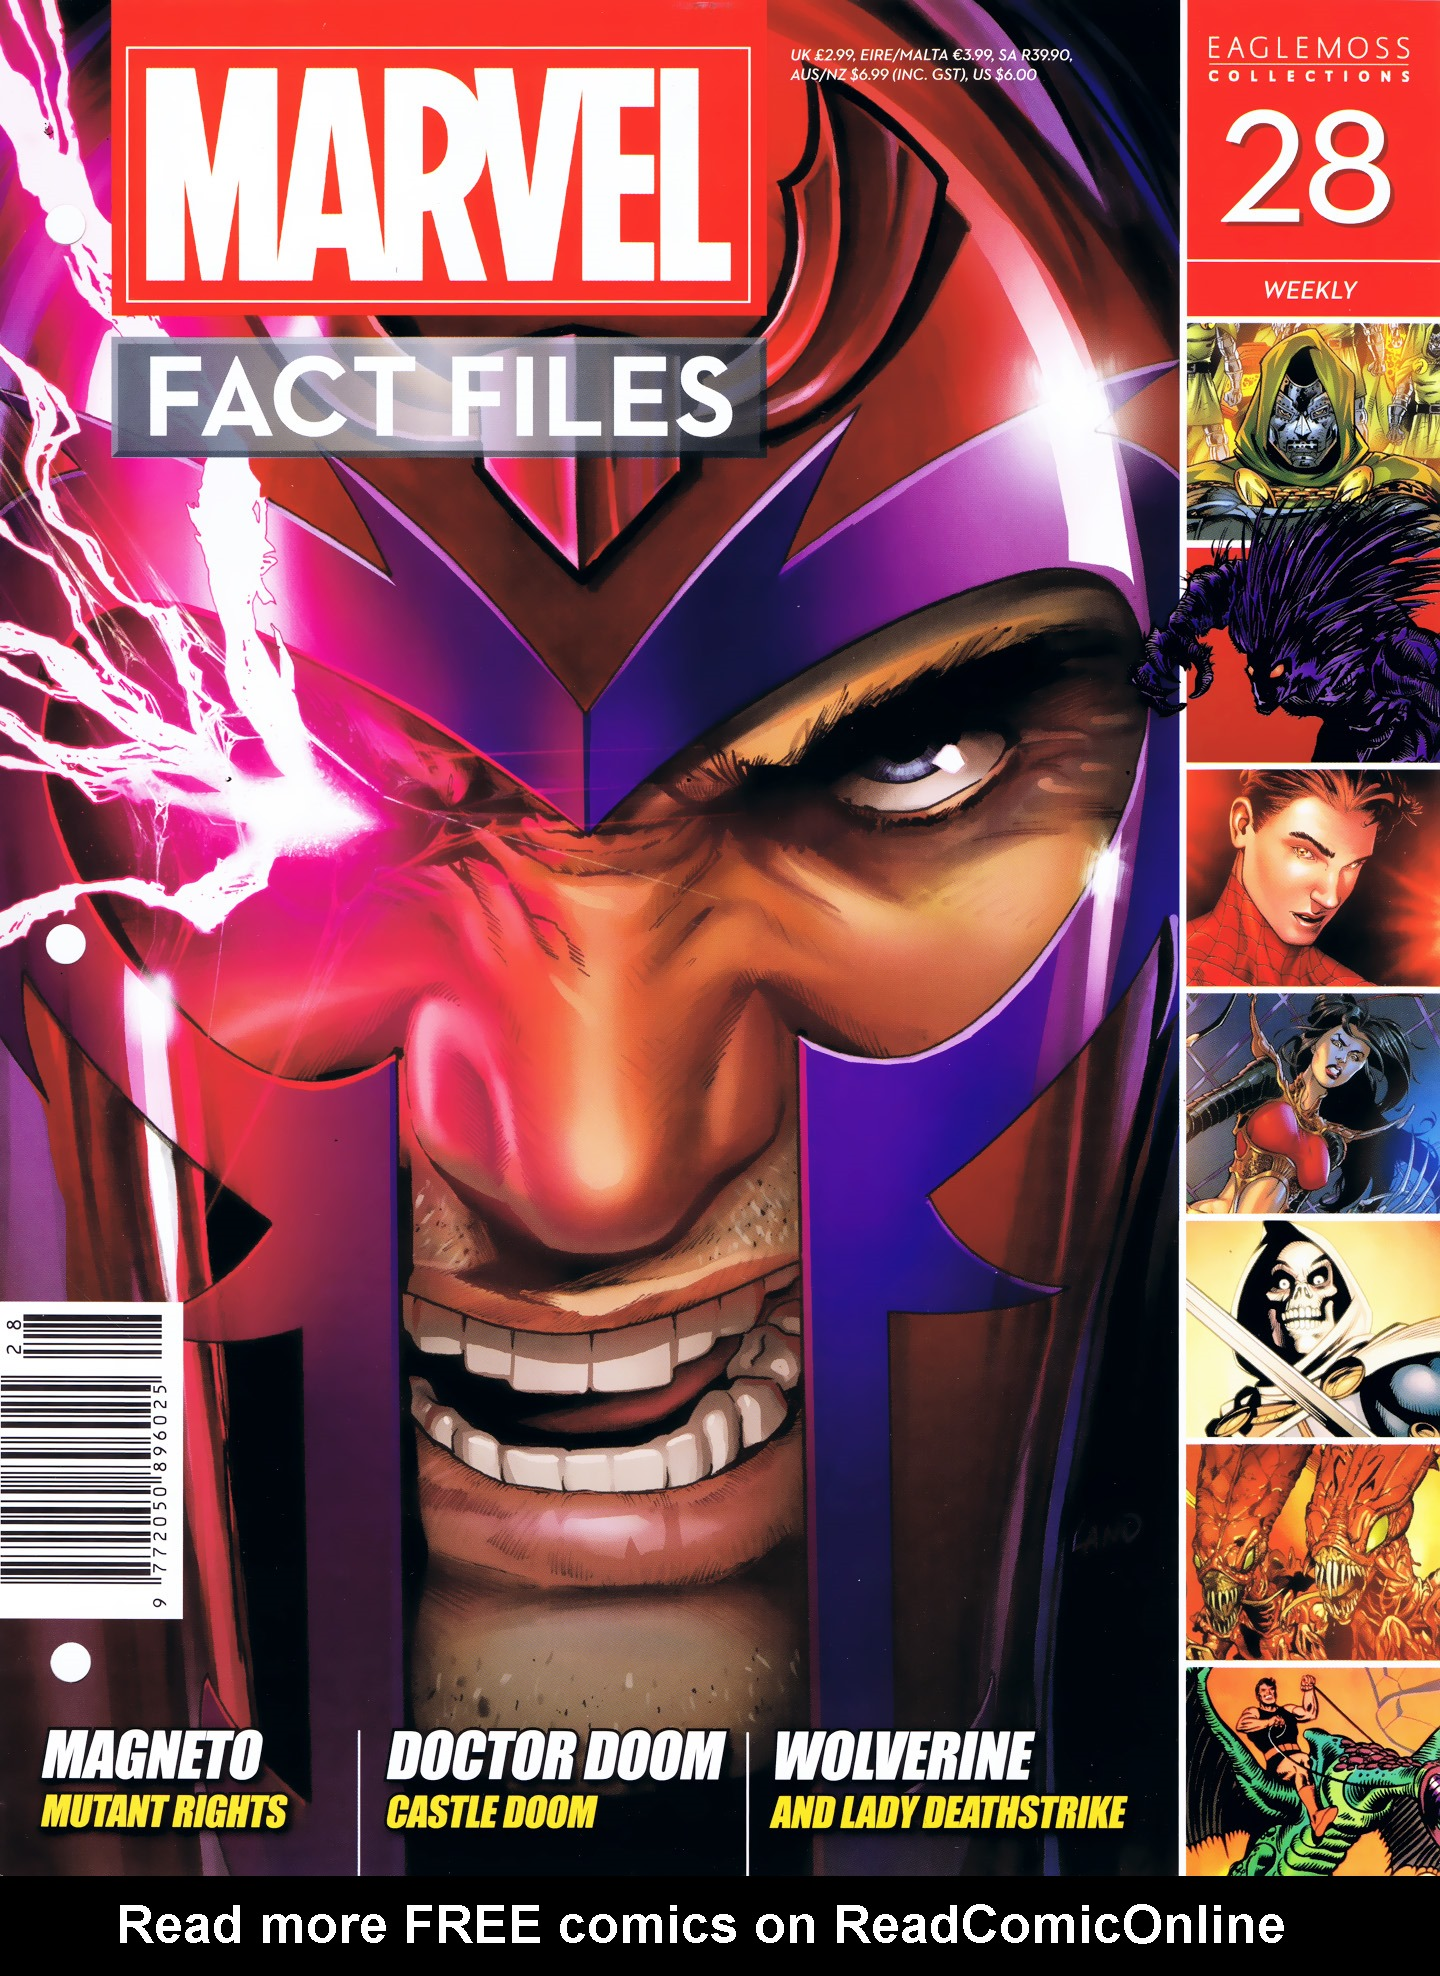 Marvel Fact Files 28 Page 1